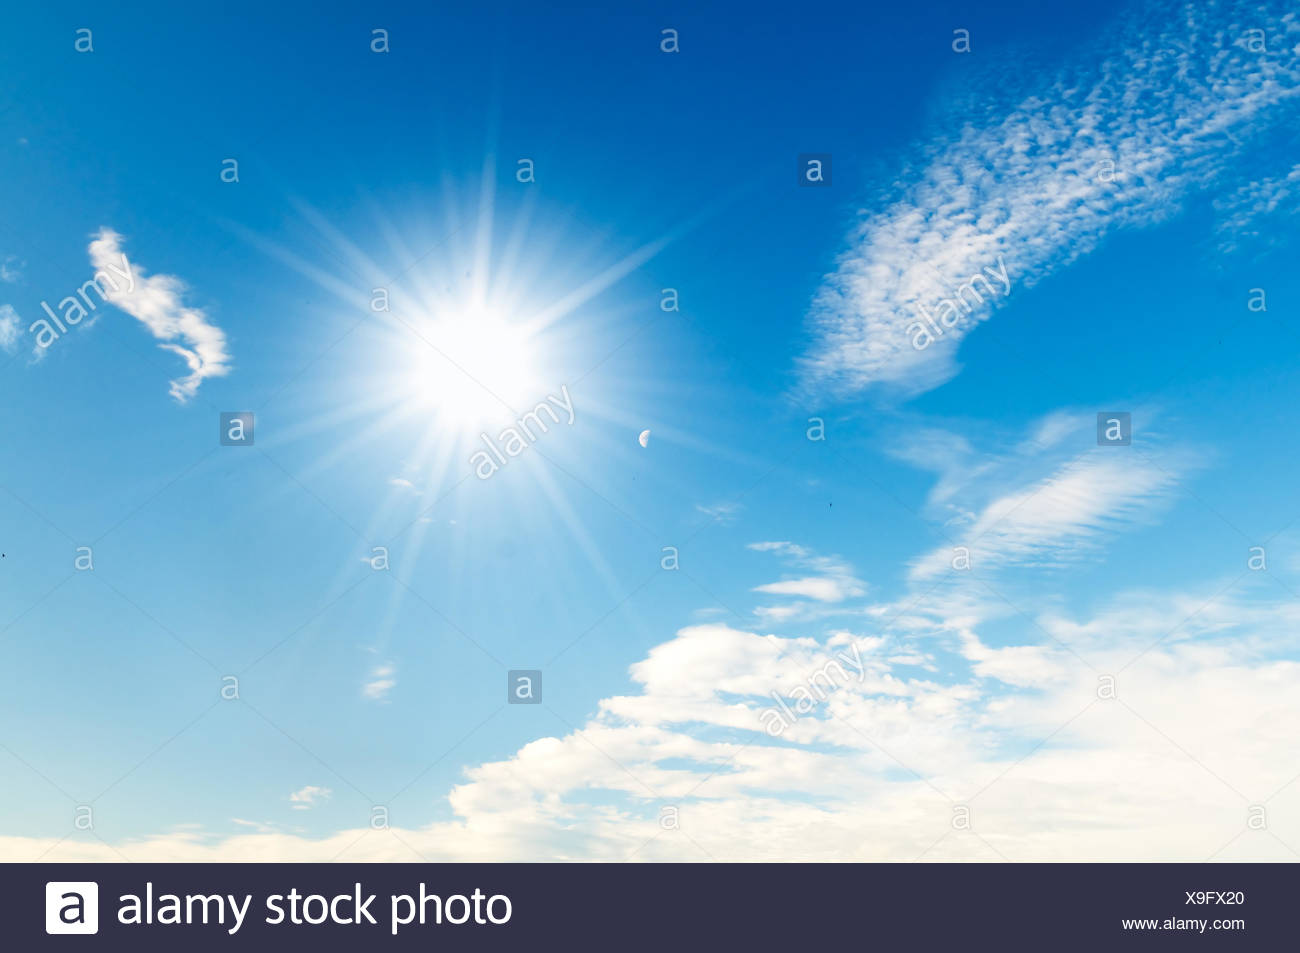 Sunny blue sky with fluffy clouds - Stock Image